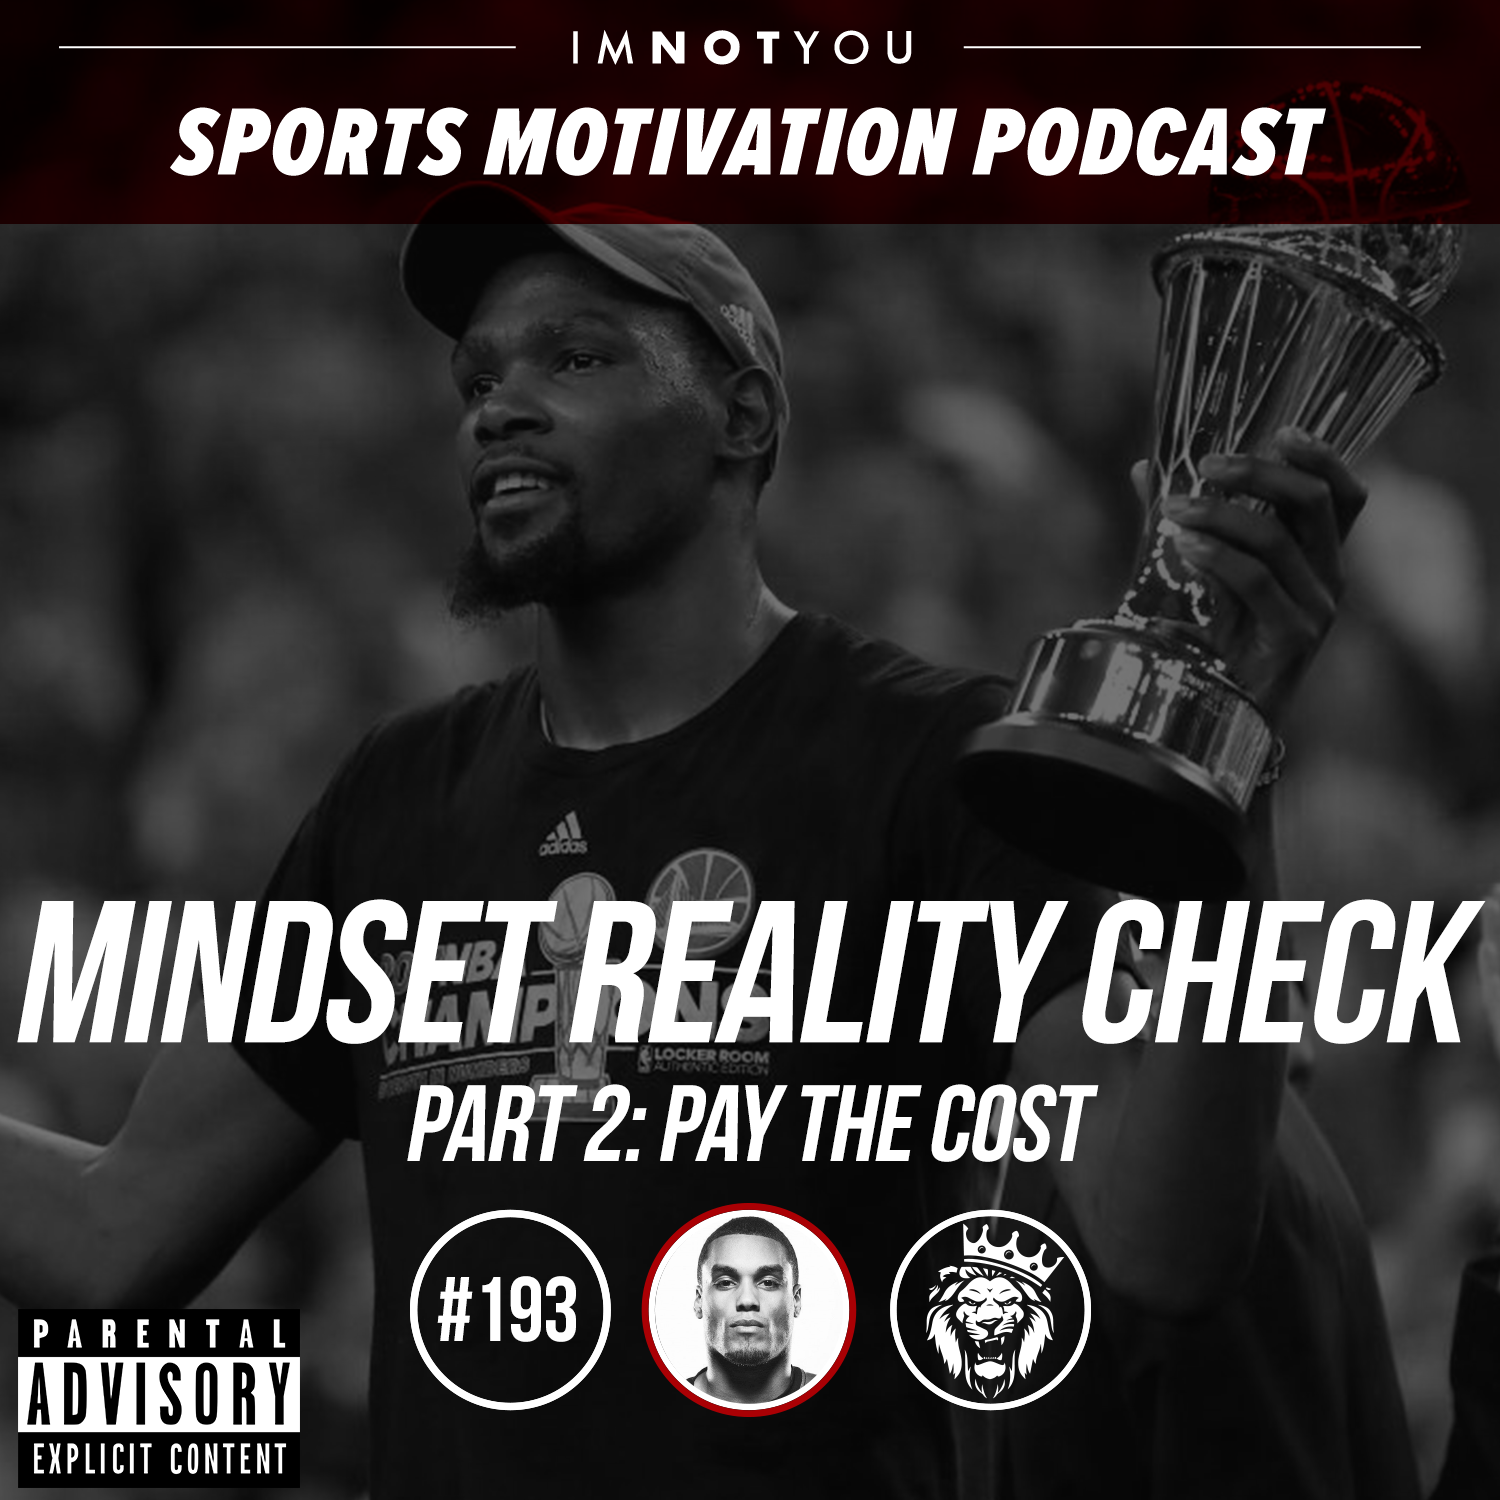 193: Mindset Reality Check Series, Part 2: Pay The Cost